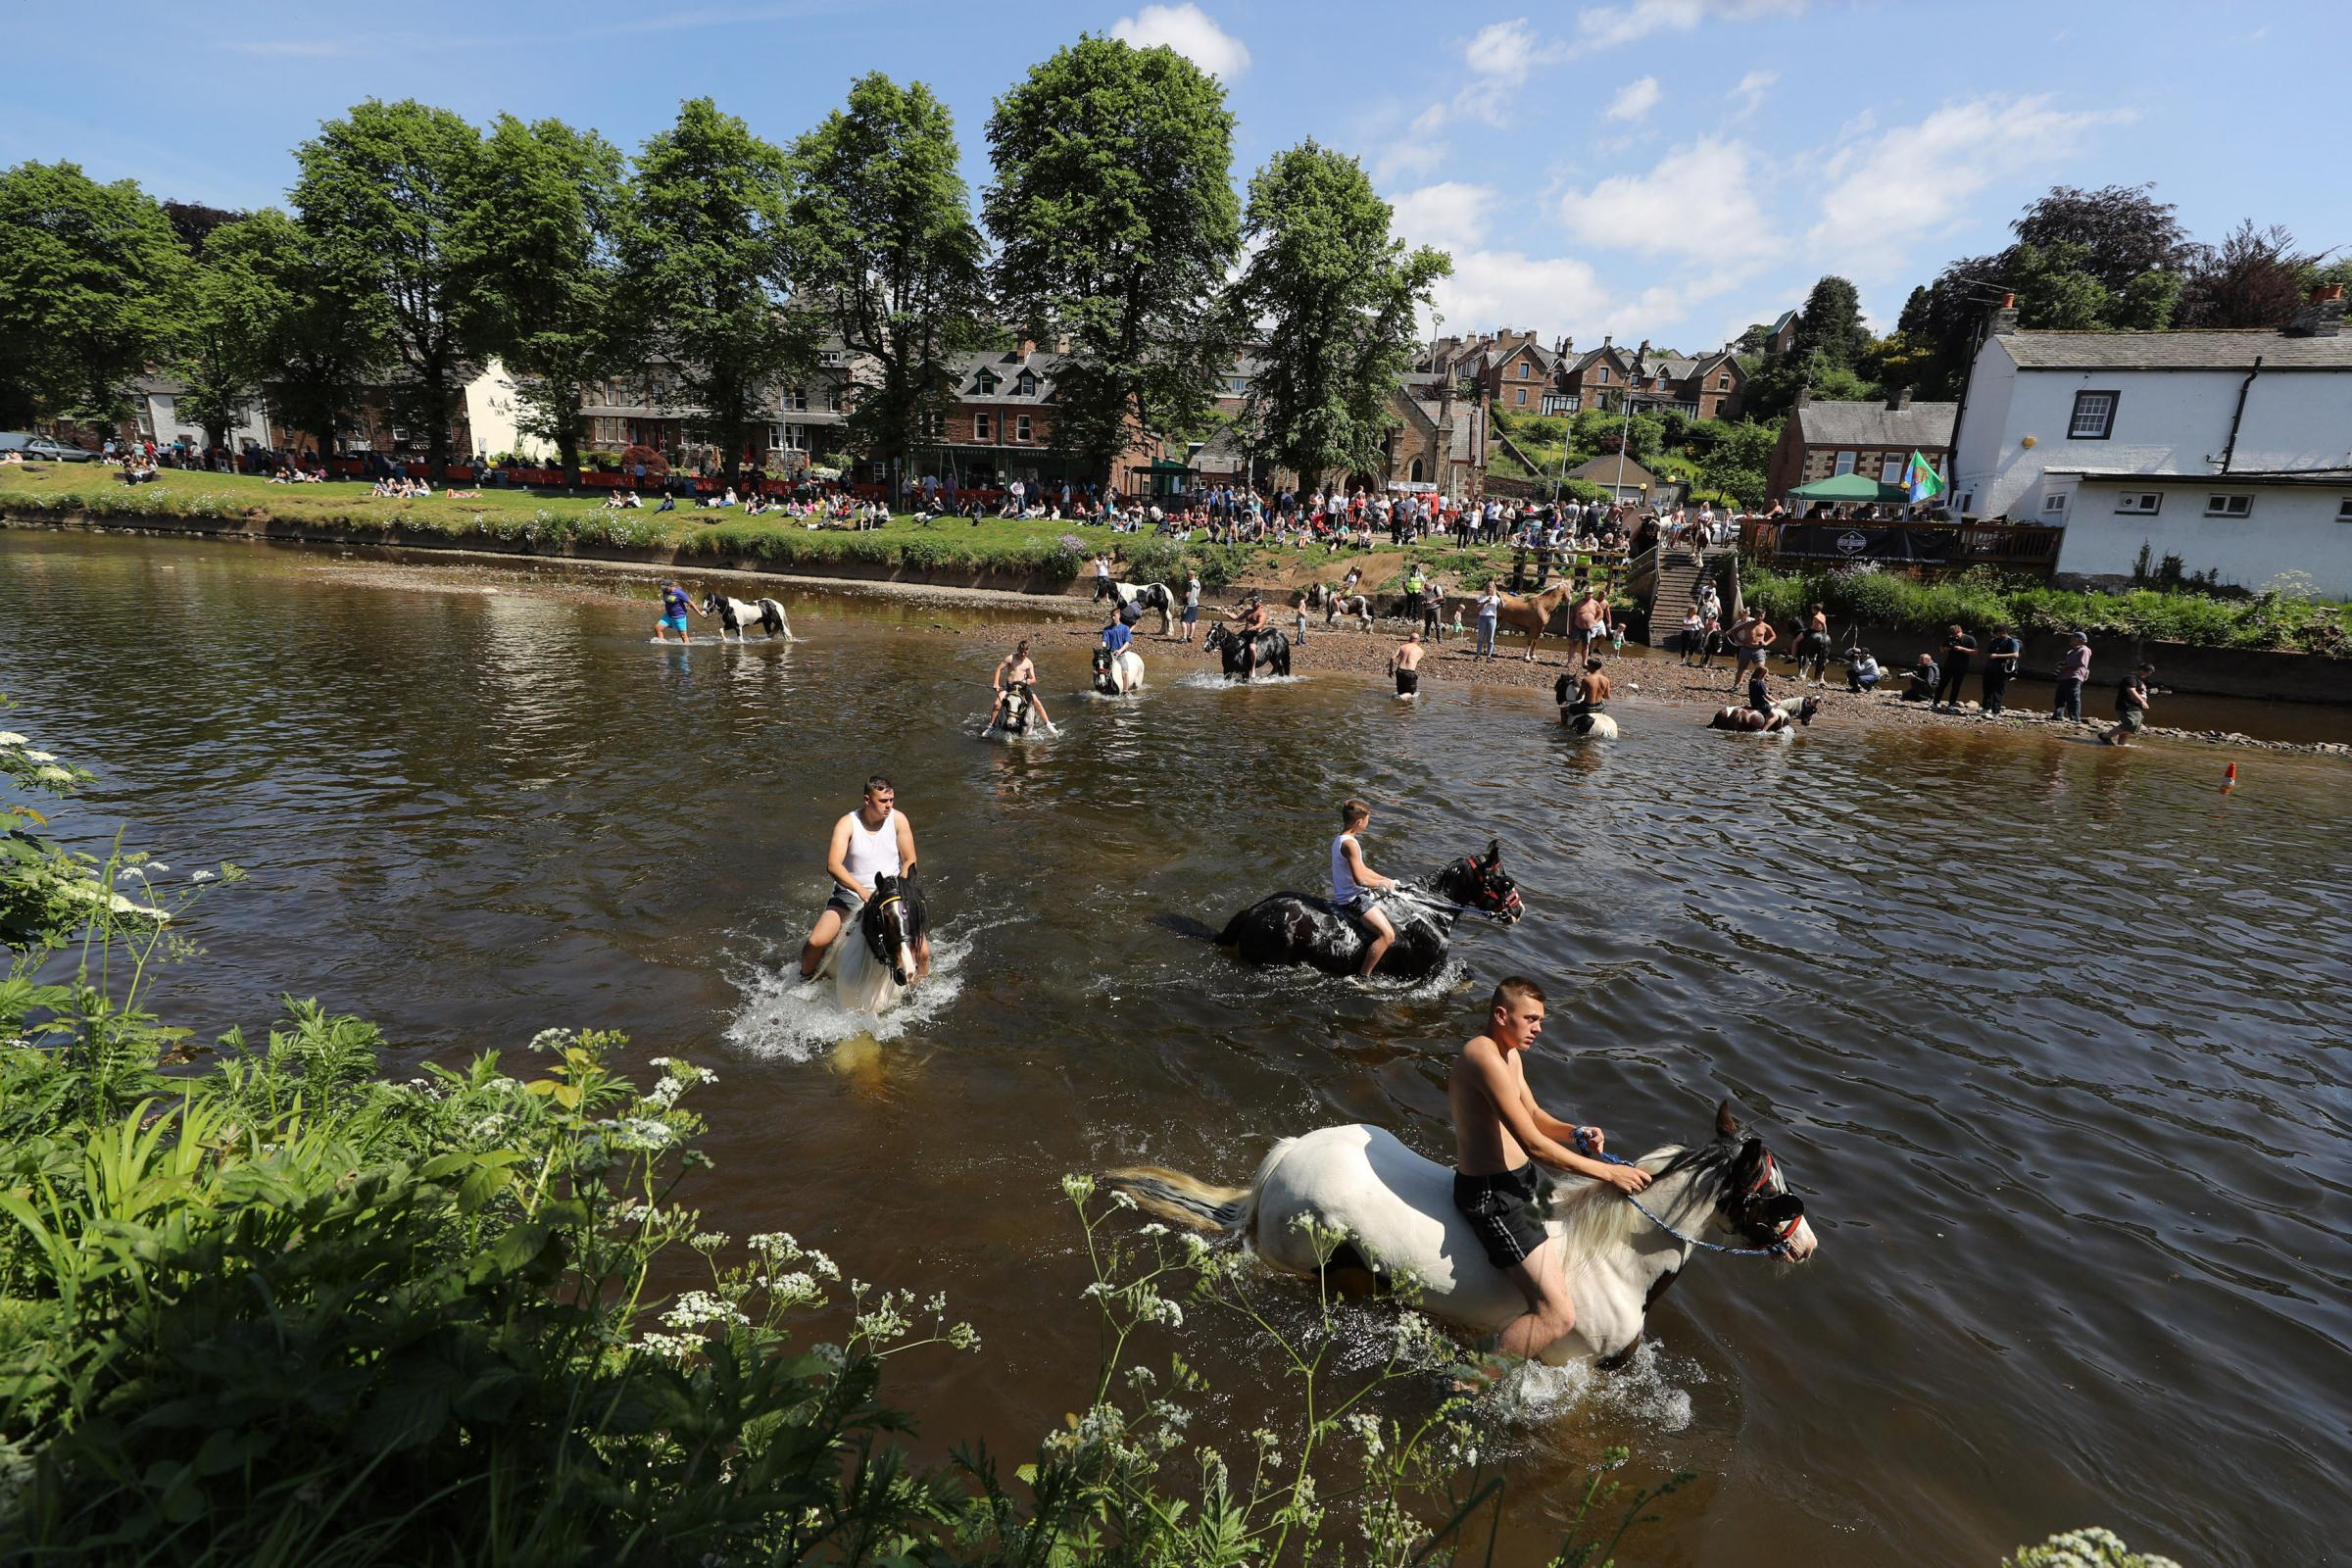 Horses are washed in the river Eden during the Horse Fair in Appleby